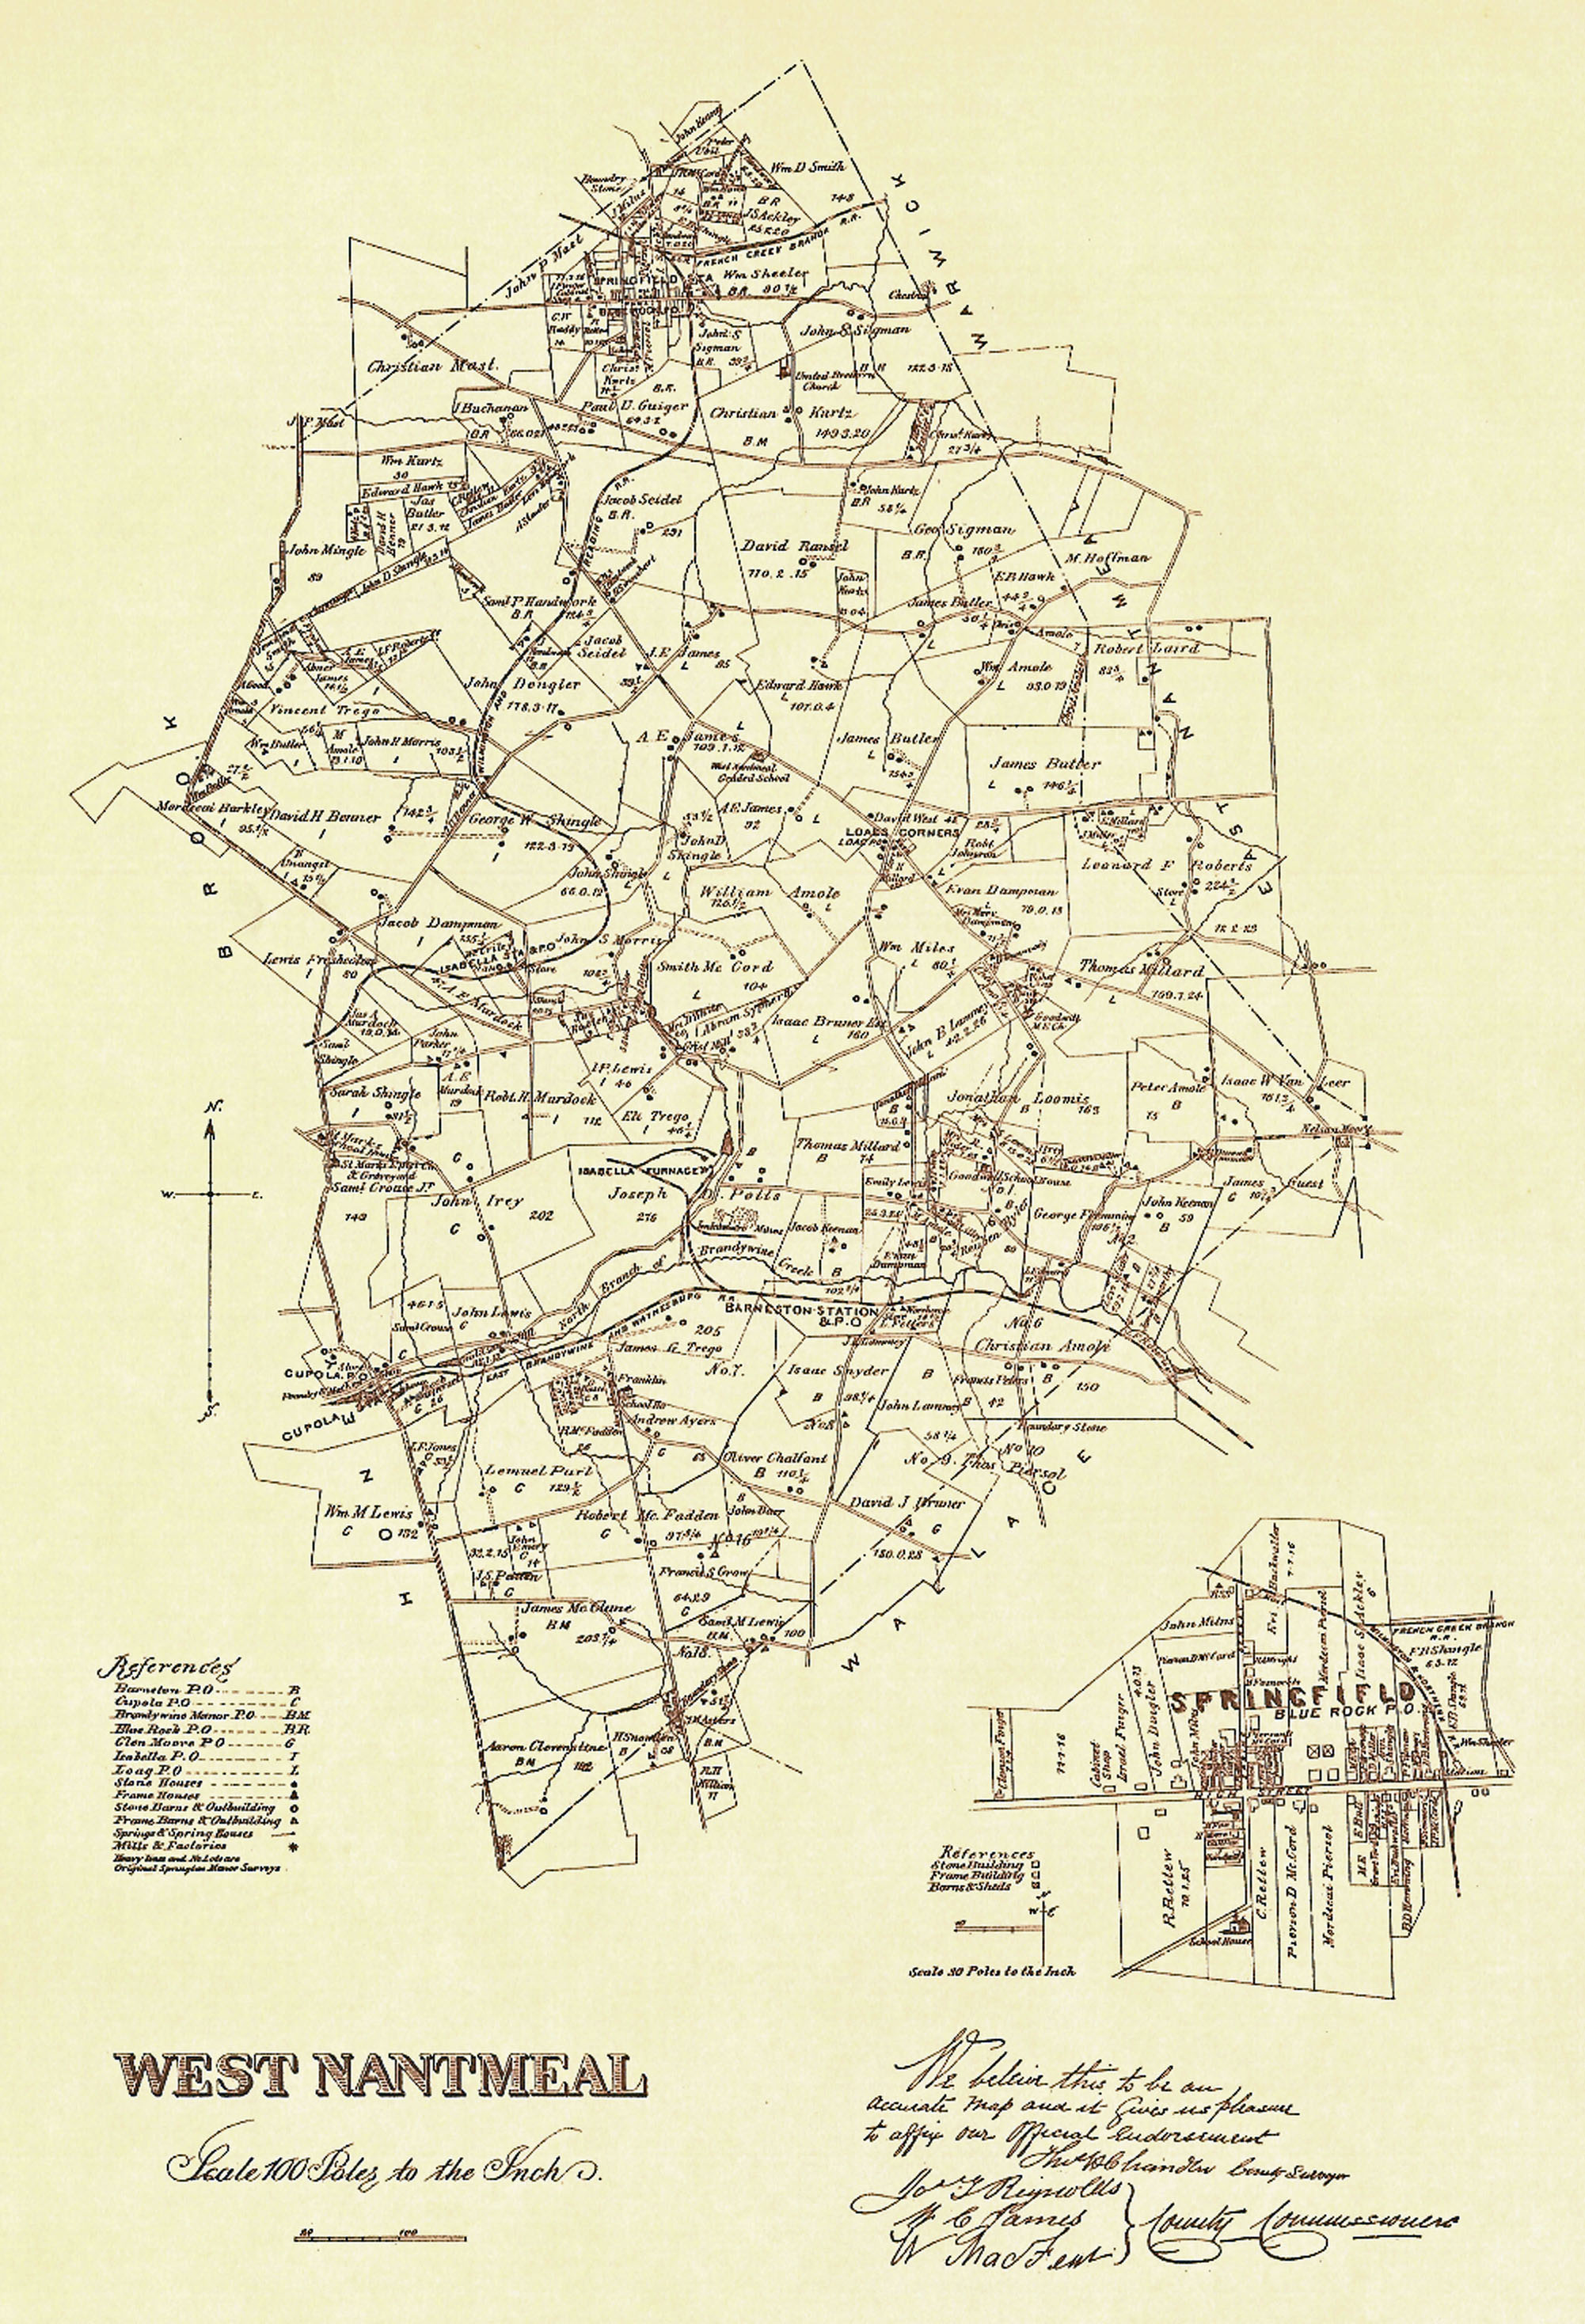 Chester County Resources on adams county, dauphin county, lancaster county, strasburg pa map, honeybrook pa map, central pa county map, oxford pa map, bucks county, schuylkill county, harrisburg pa map, delaware county, monroe county pa map, philadelphia pa map, berks county, dauphin county pa map, chester pennsylvania, west chester pa map, fayette county pa map, west chester, fulton county, york county, philadelphia county, chadds ford pa map, clinton county pa map, montgomery county pa map, franklin county, newtown square pa map, chester county road map, allegheny county pa map, allegheny county, montgomery county, clinton county, chester county zip code map, eastern pa map, cumberland county,